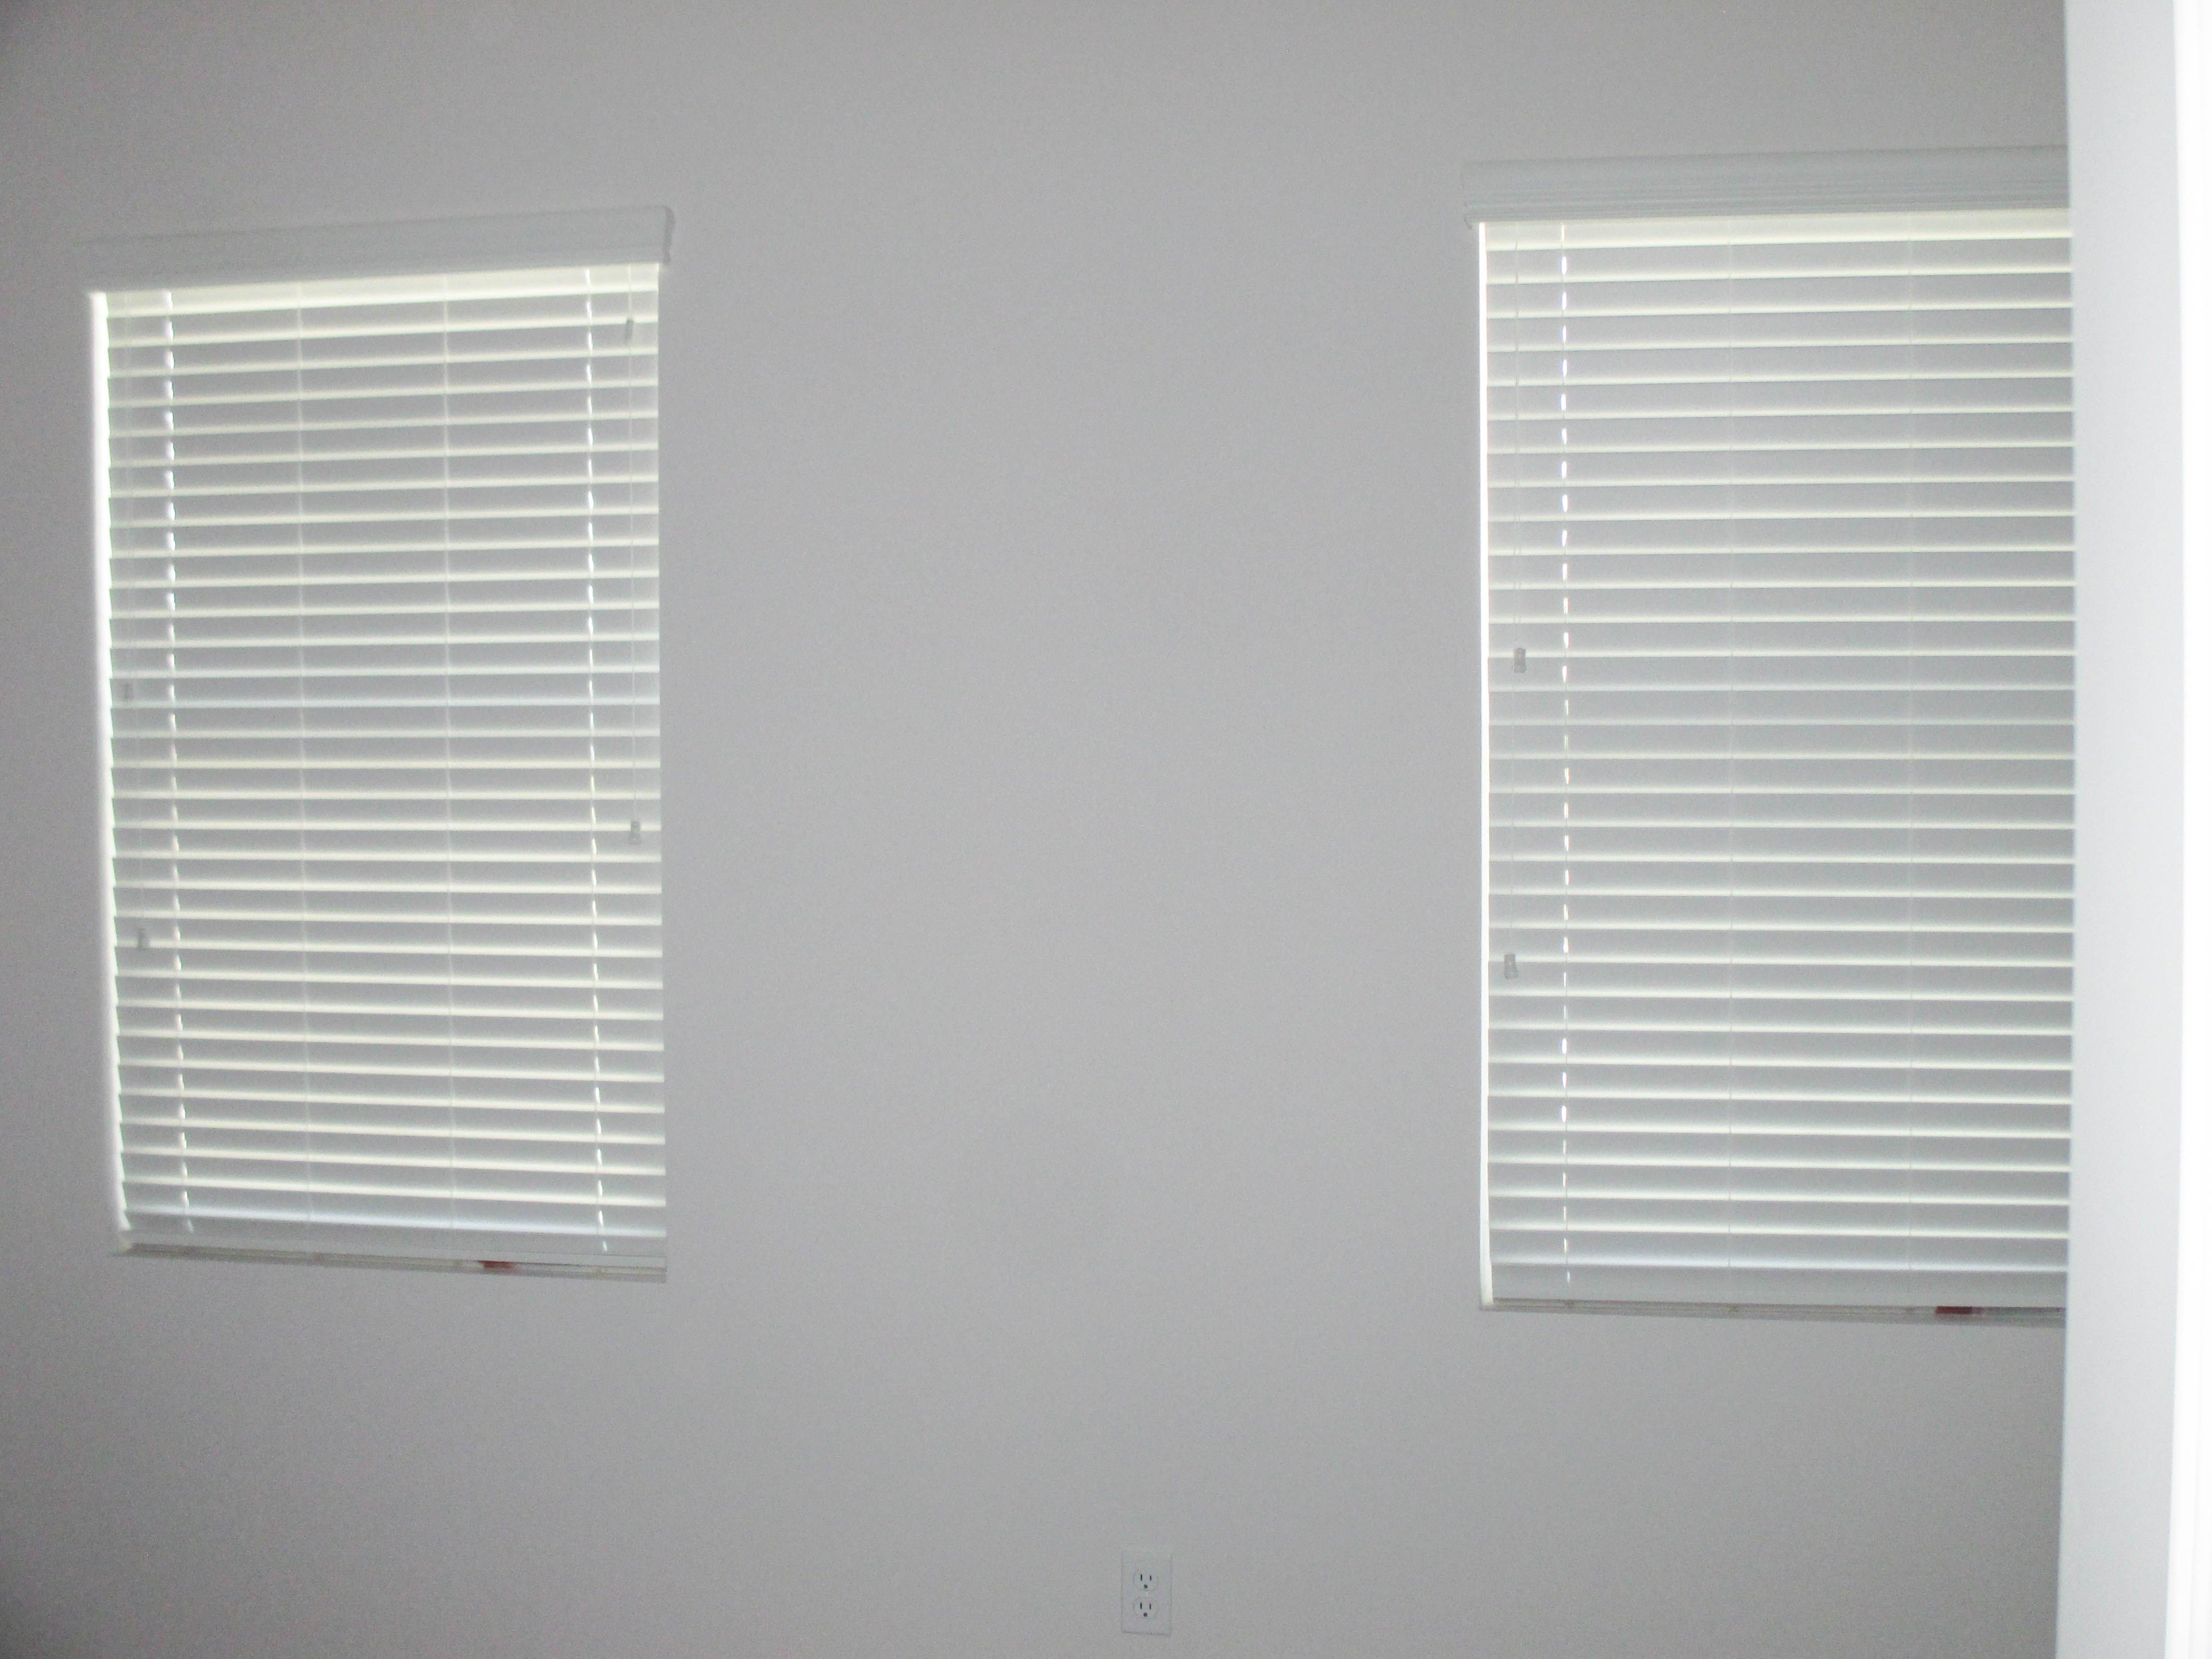 Office window coverings  here some blinds there some blinds everywhere some blinds blinds